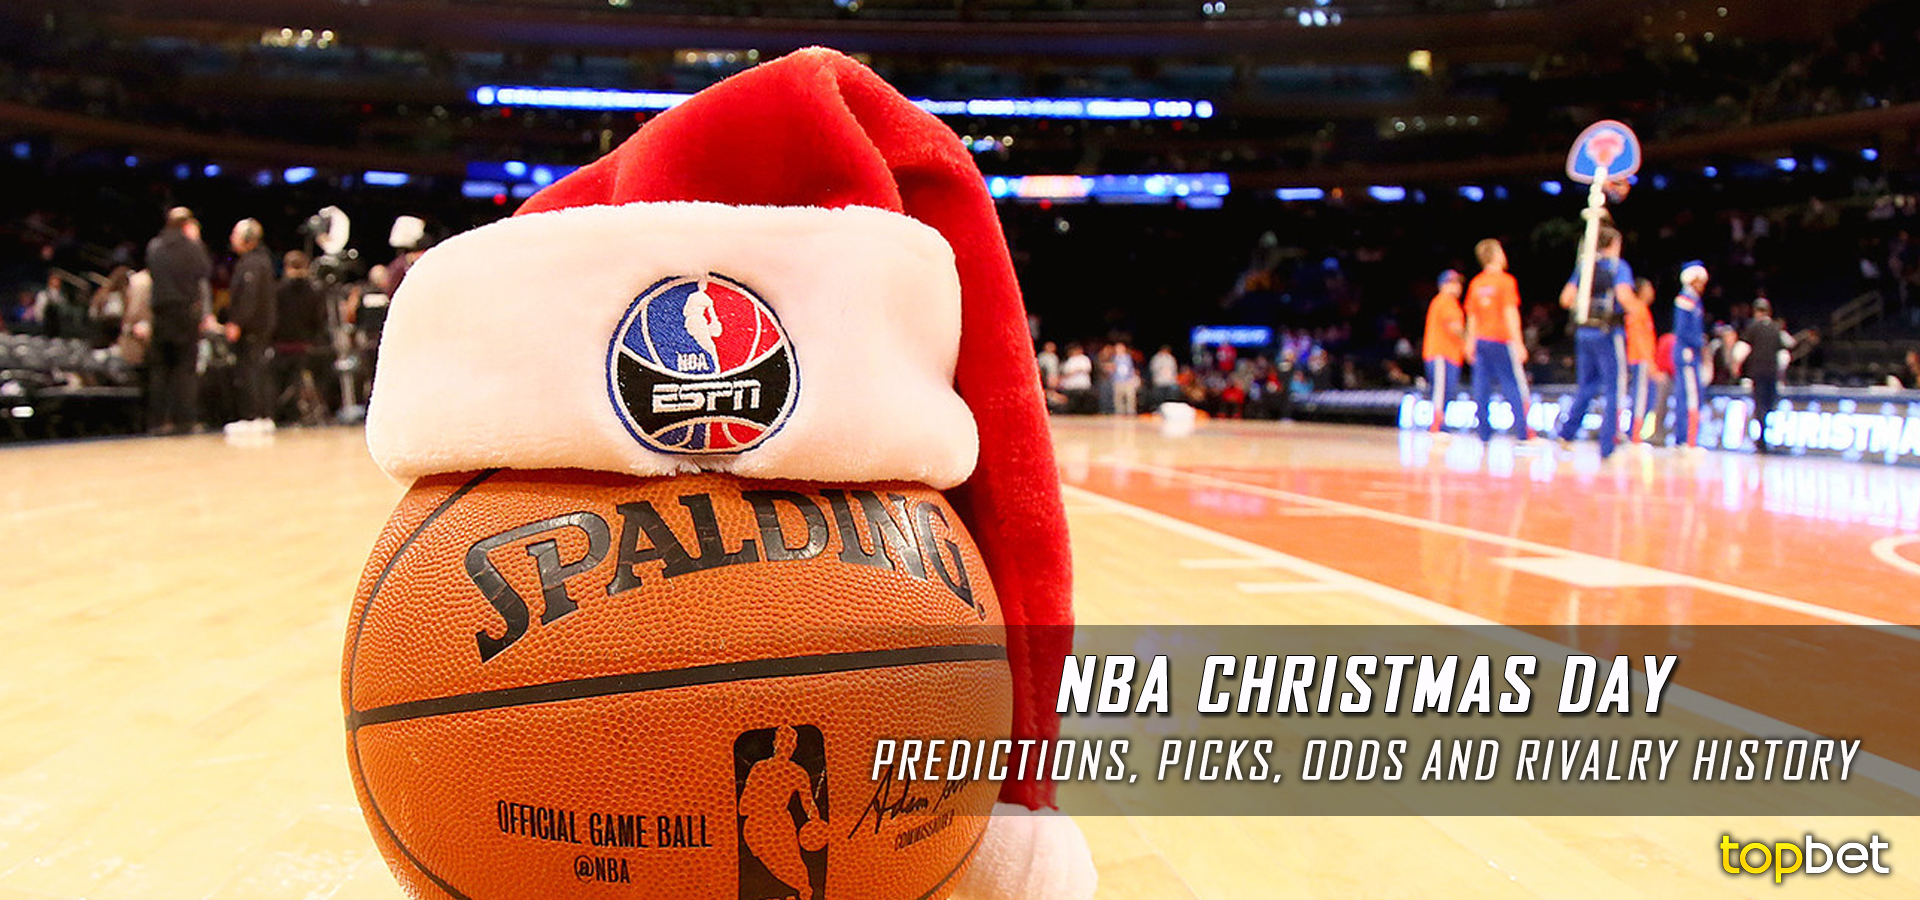 2016 NBA Christmas Day Betting Odds, Picks and Predictions